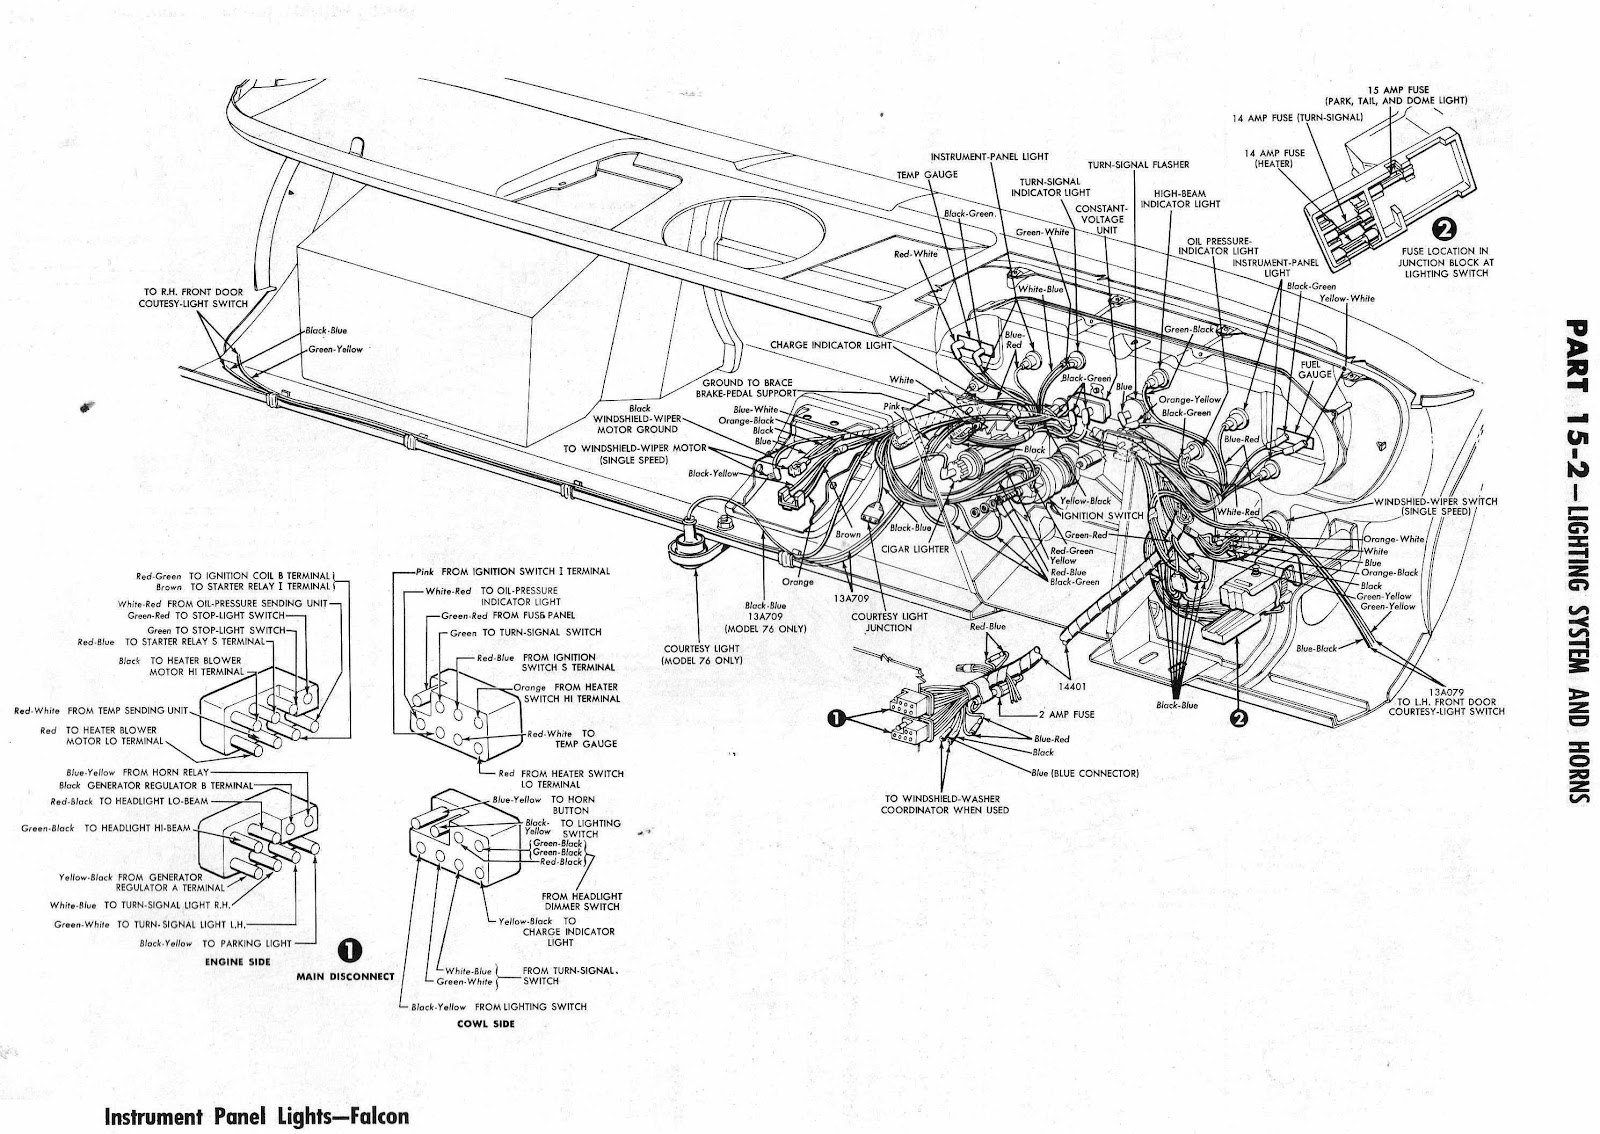 Ford+Falcon+1964+Lighting+System+and+Horns+Wiring+Diagram au falcon wiring diagram falcon guide \u2022 wiring diagrams j squared co  at arjmand.co